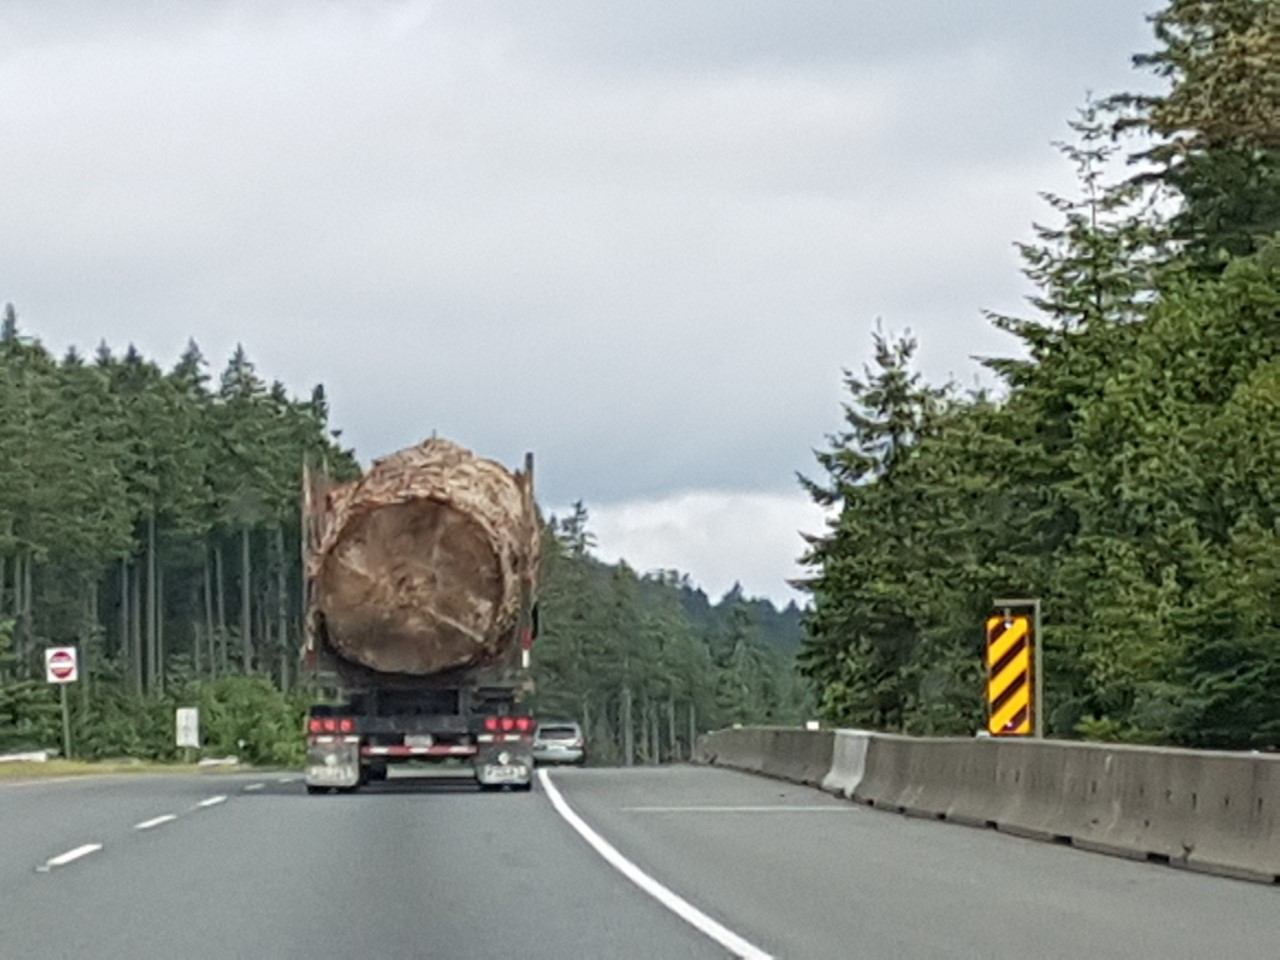 Lorna Beecroft took this photo on Tuesday morning on the Nanaimo Parkway on Vancouver Island.